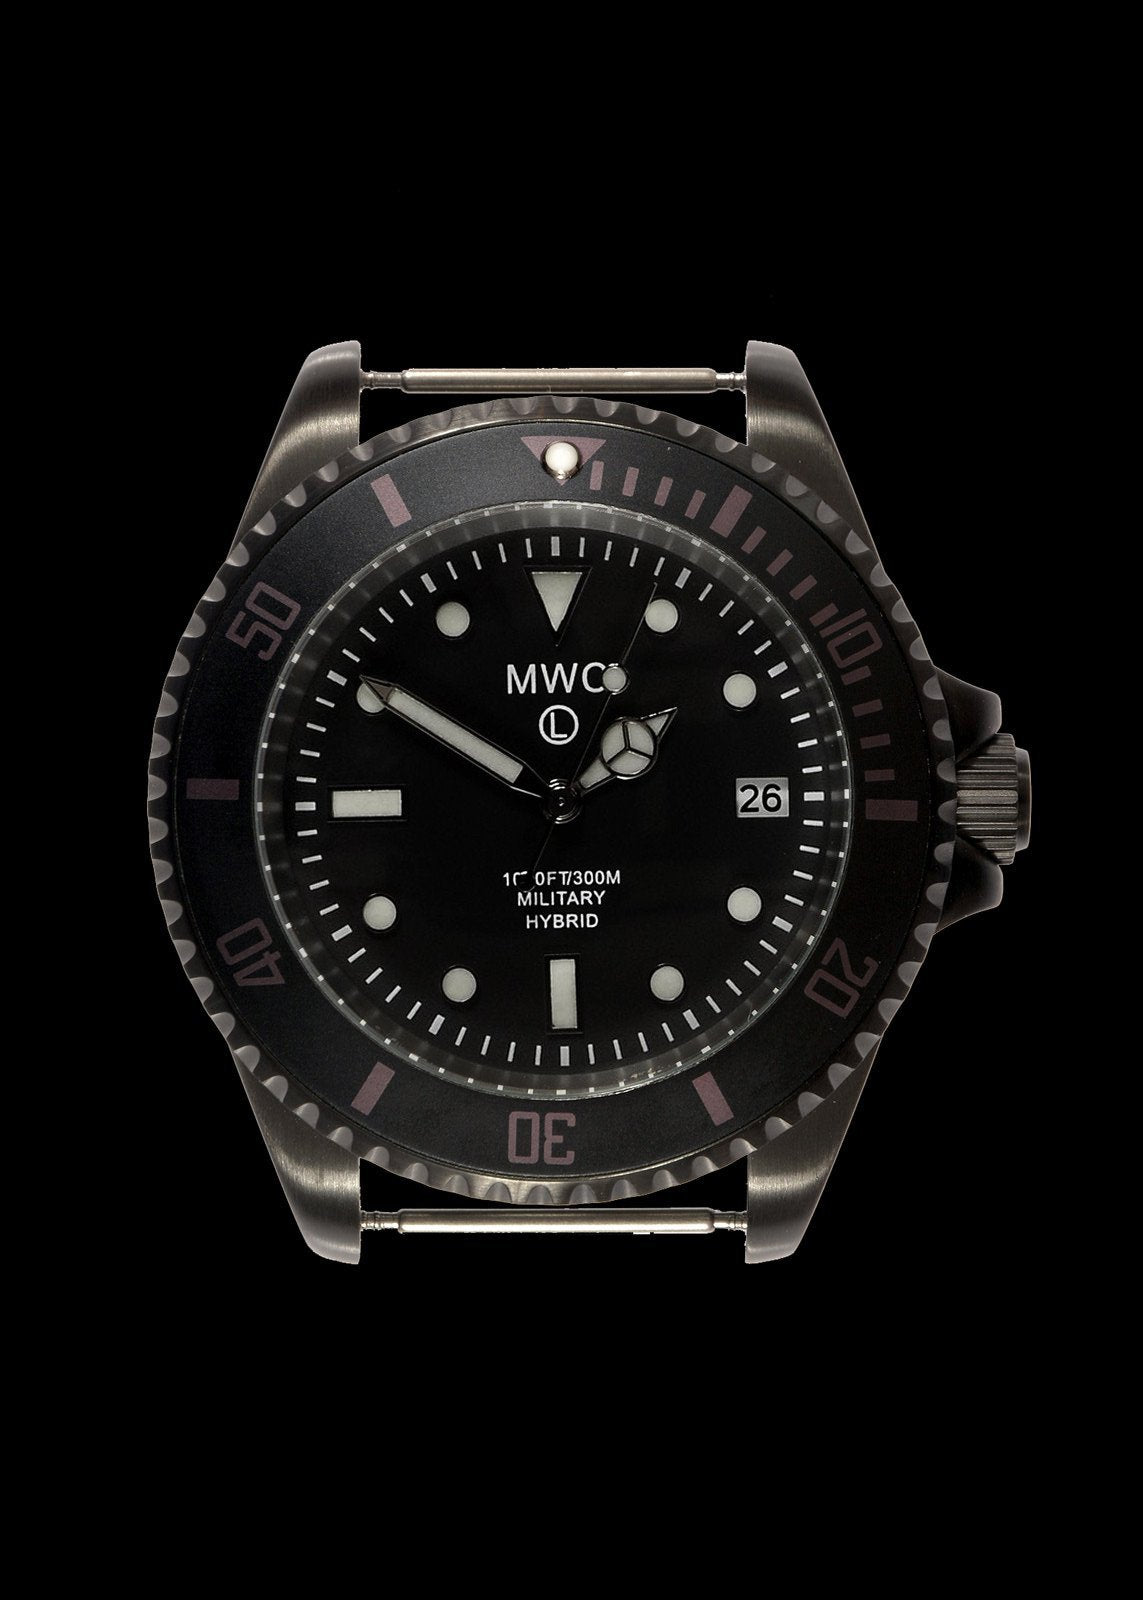 MWC 300m / 1000ft Black PVD Hybrid Military Divers Watch - Might Need Capacitor Recharge or Replacement